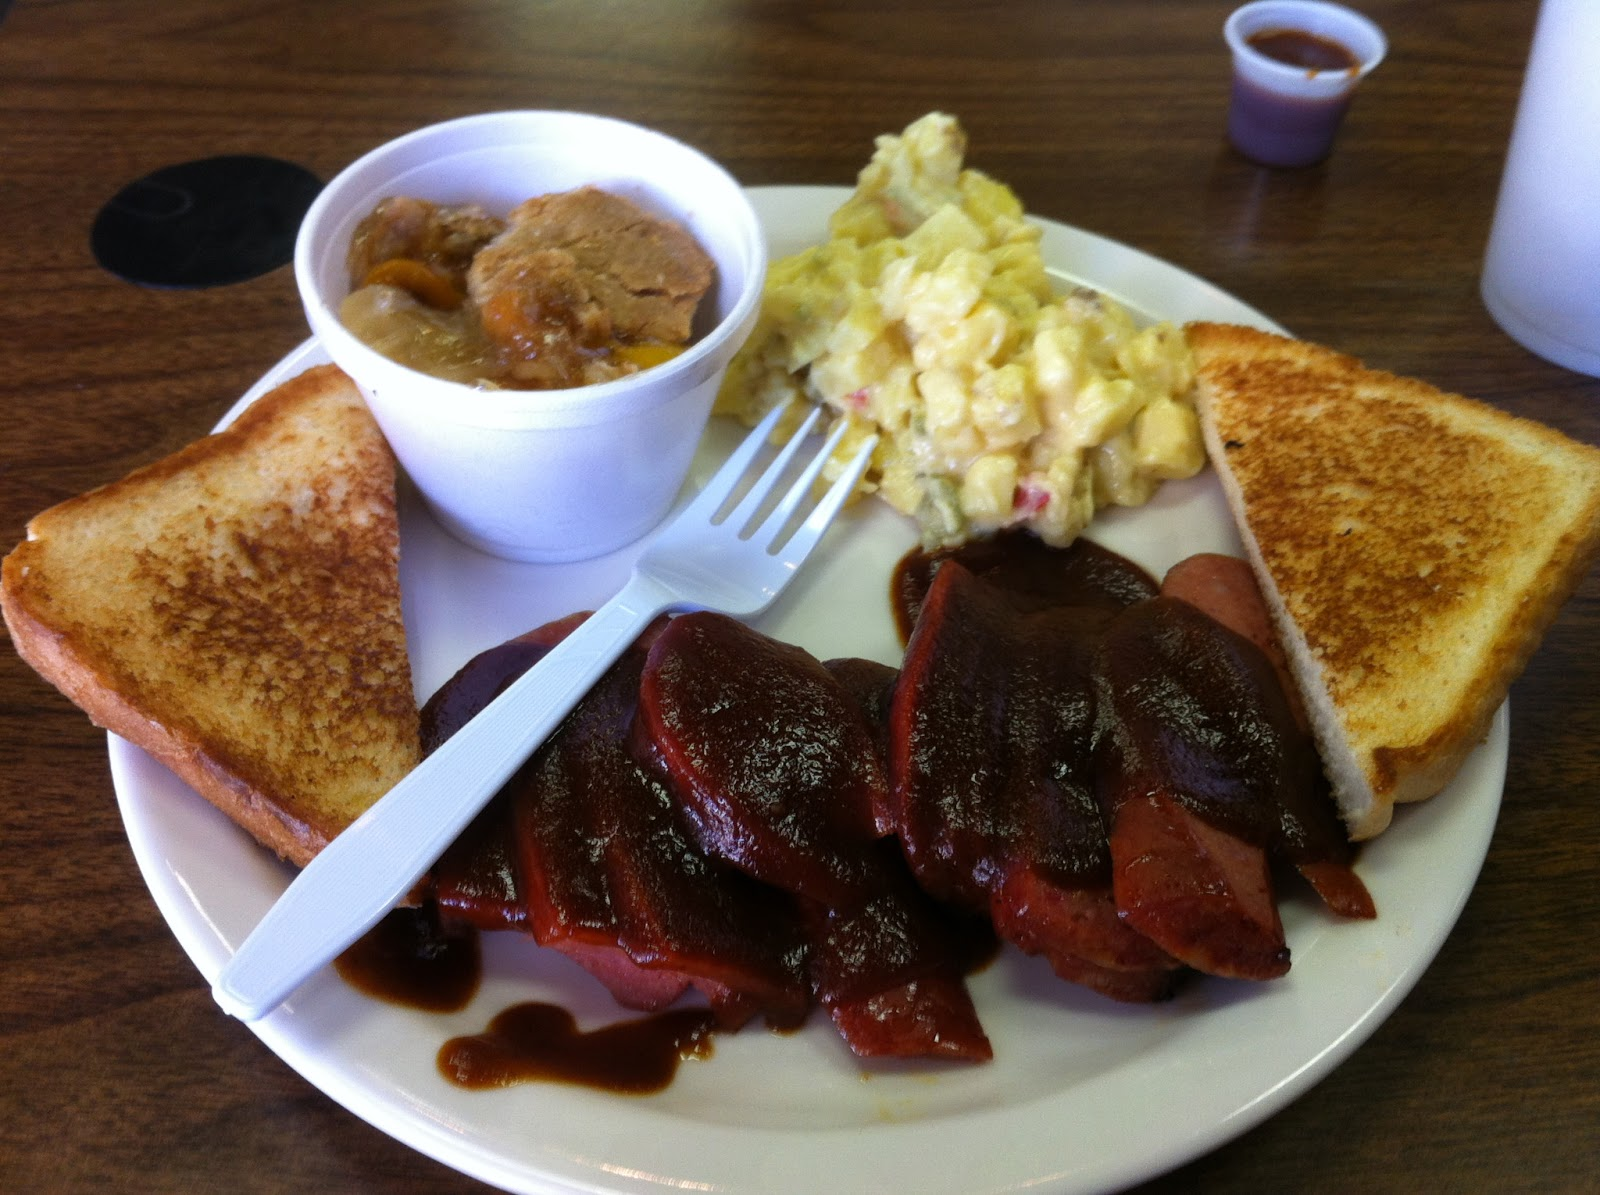 Colt Colter Texas Bar-B-Q Barbecue Barbeque Bar-B-Que BBQ Dallas Sausage